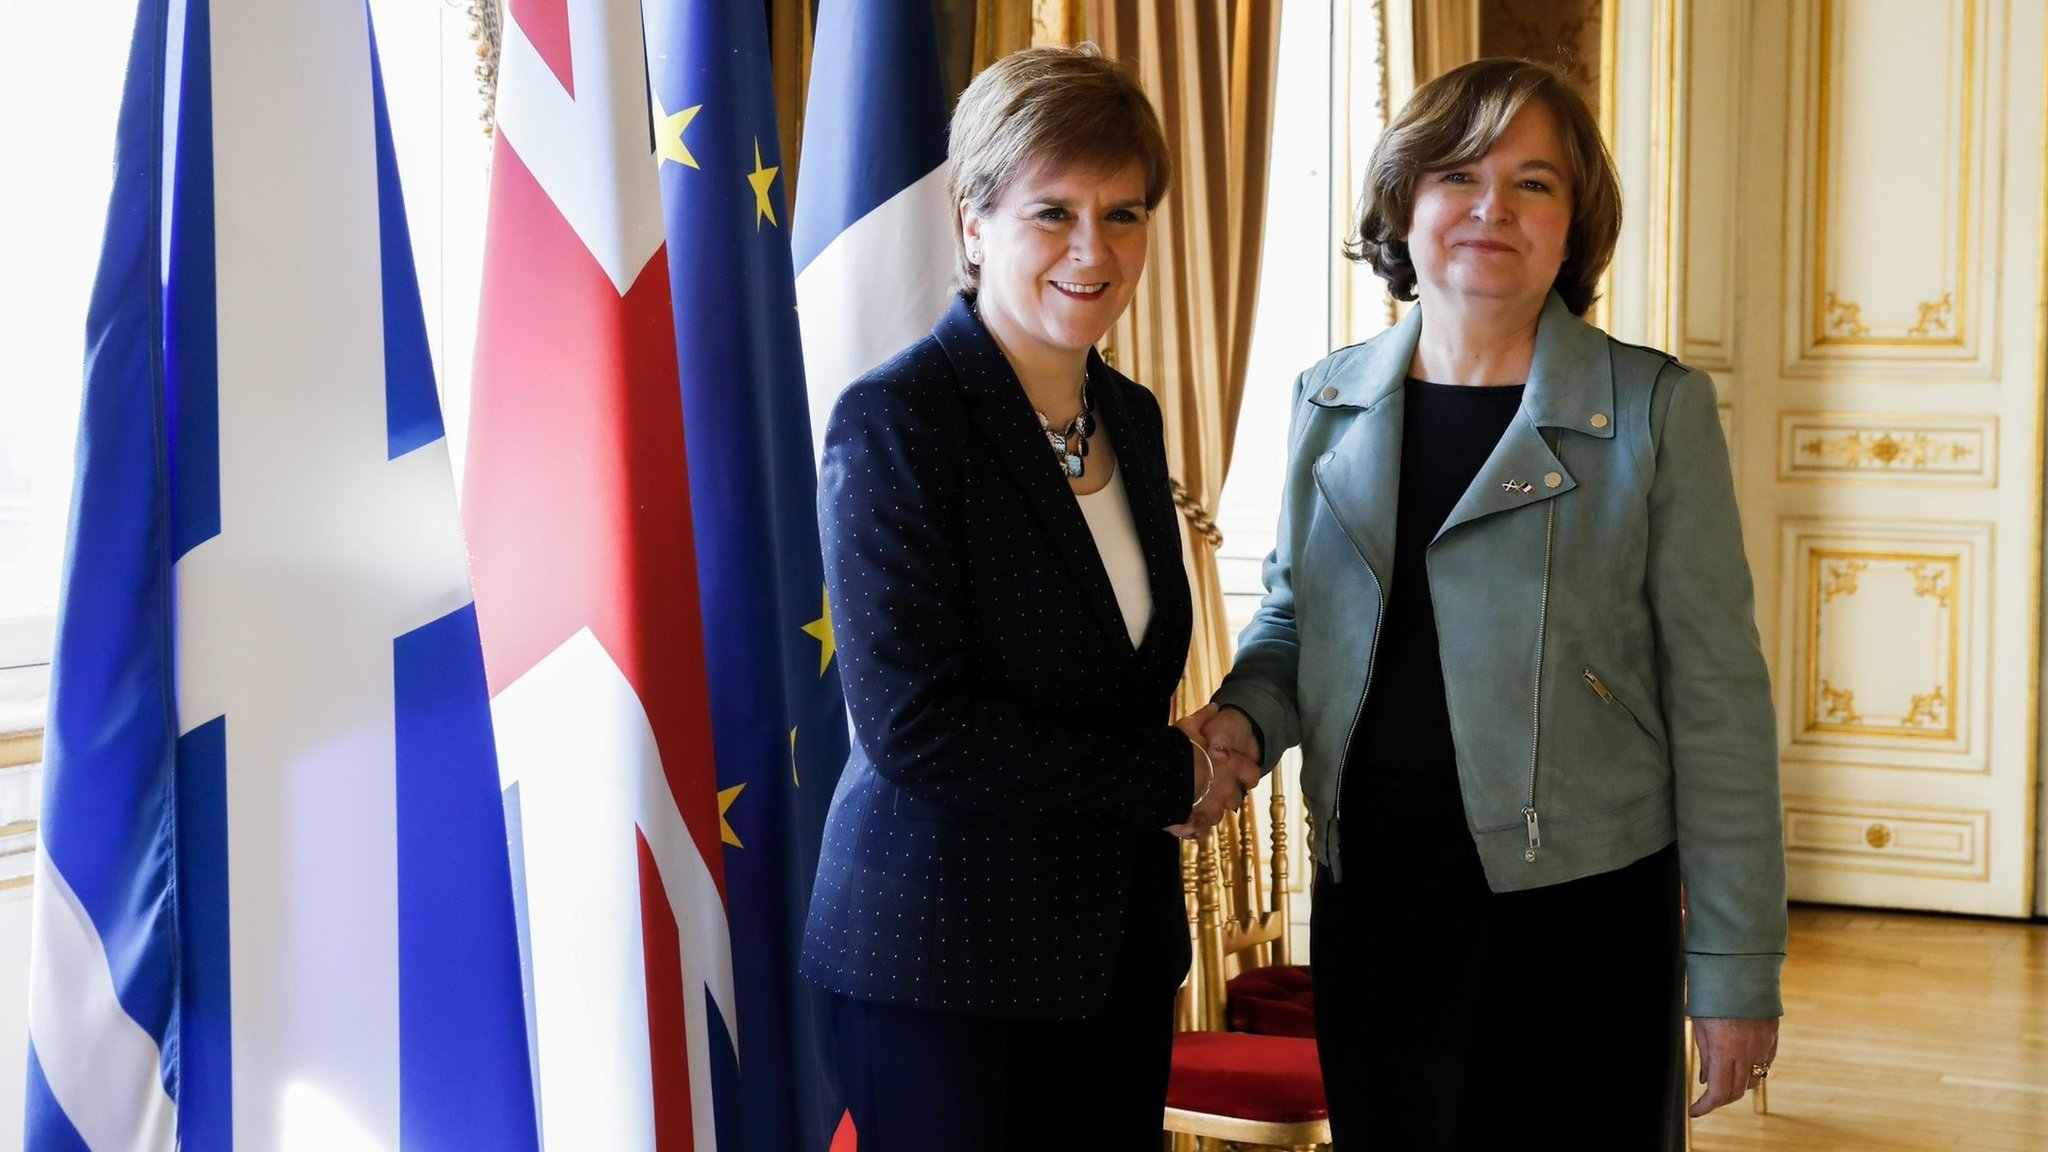 Sturgeon urges EU citizens to stay in Scotland after Brexit